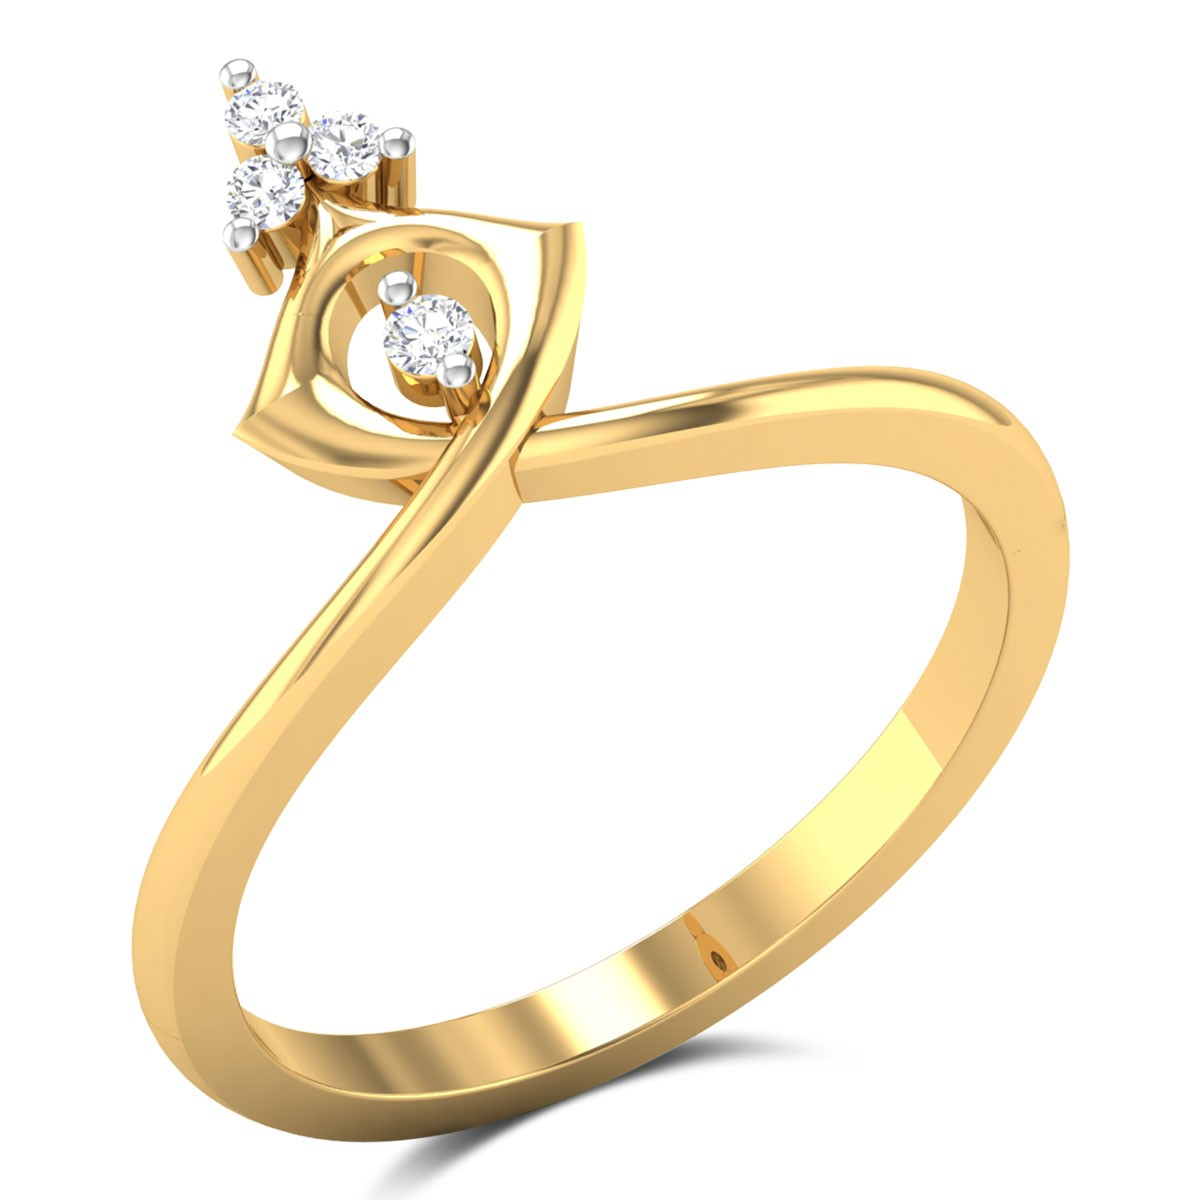 Adalaide Diamond Ring